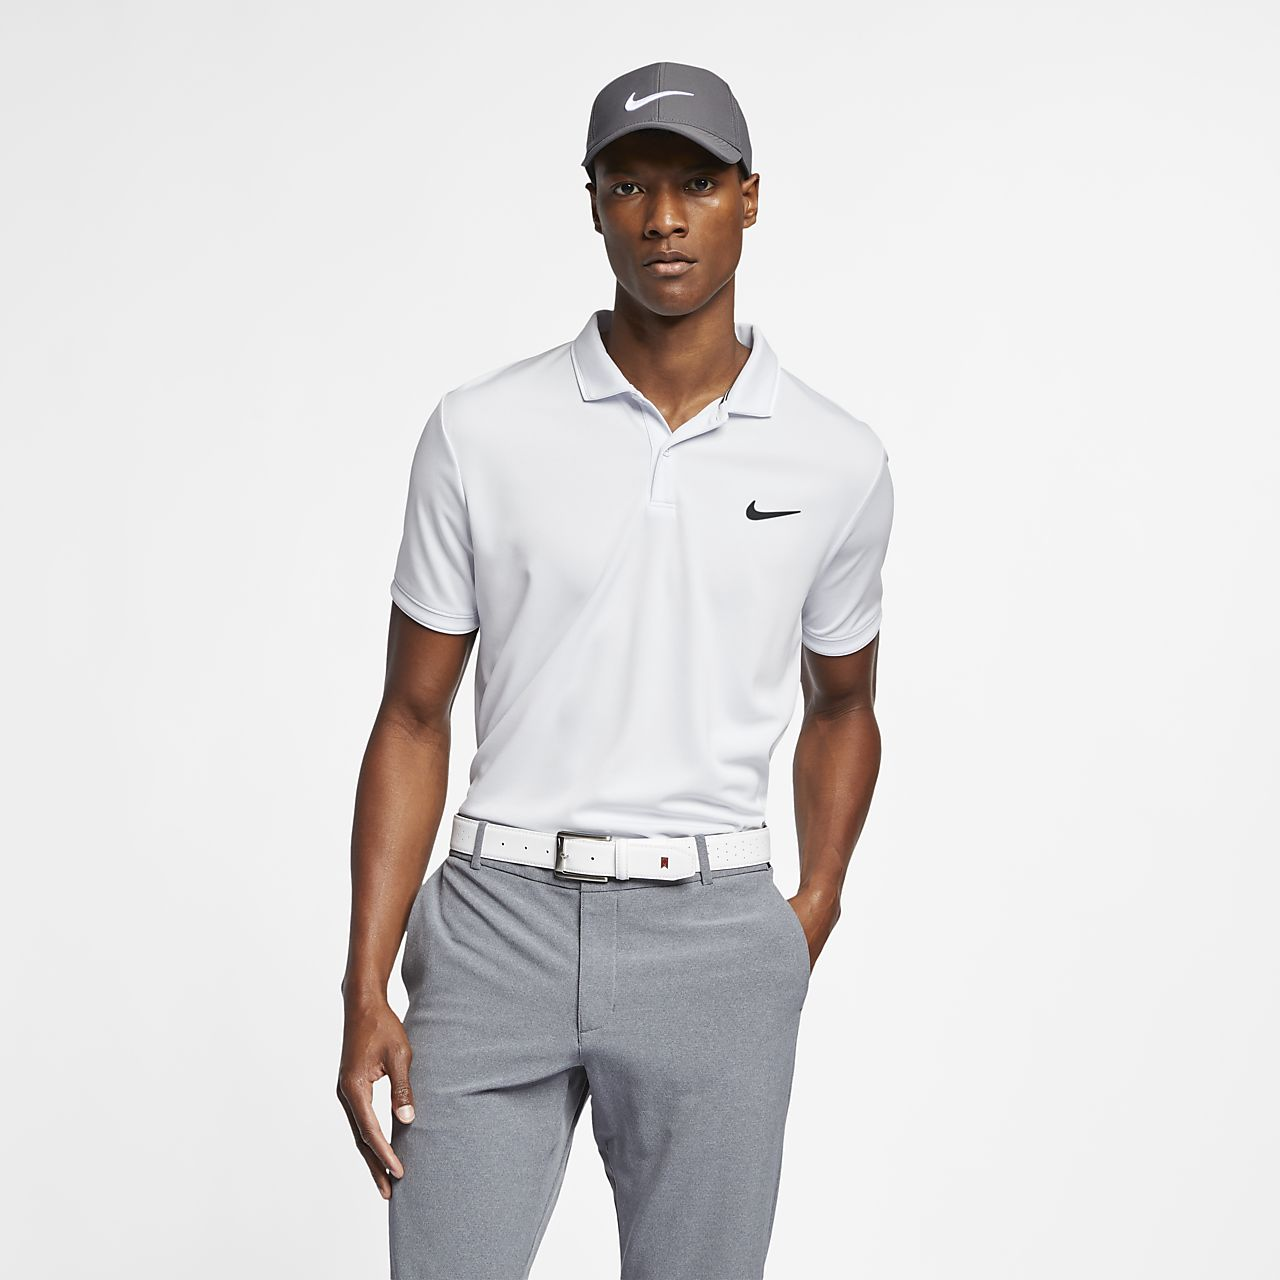 NikeCourt Dri-FIT Team Men's Tennis Polo